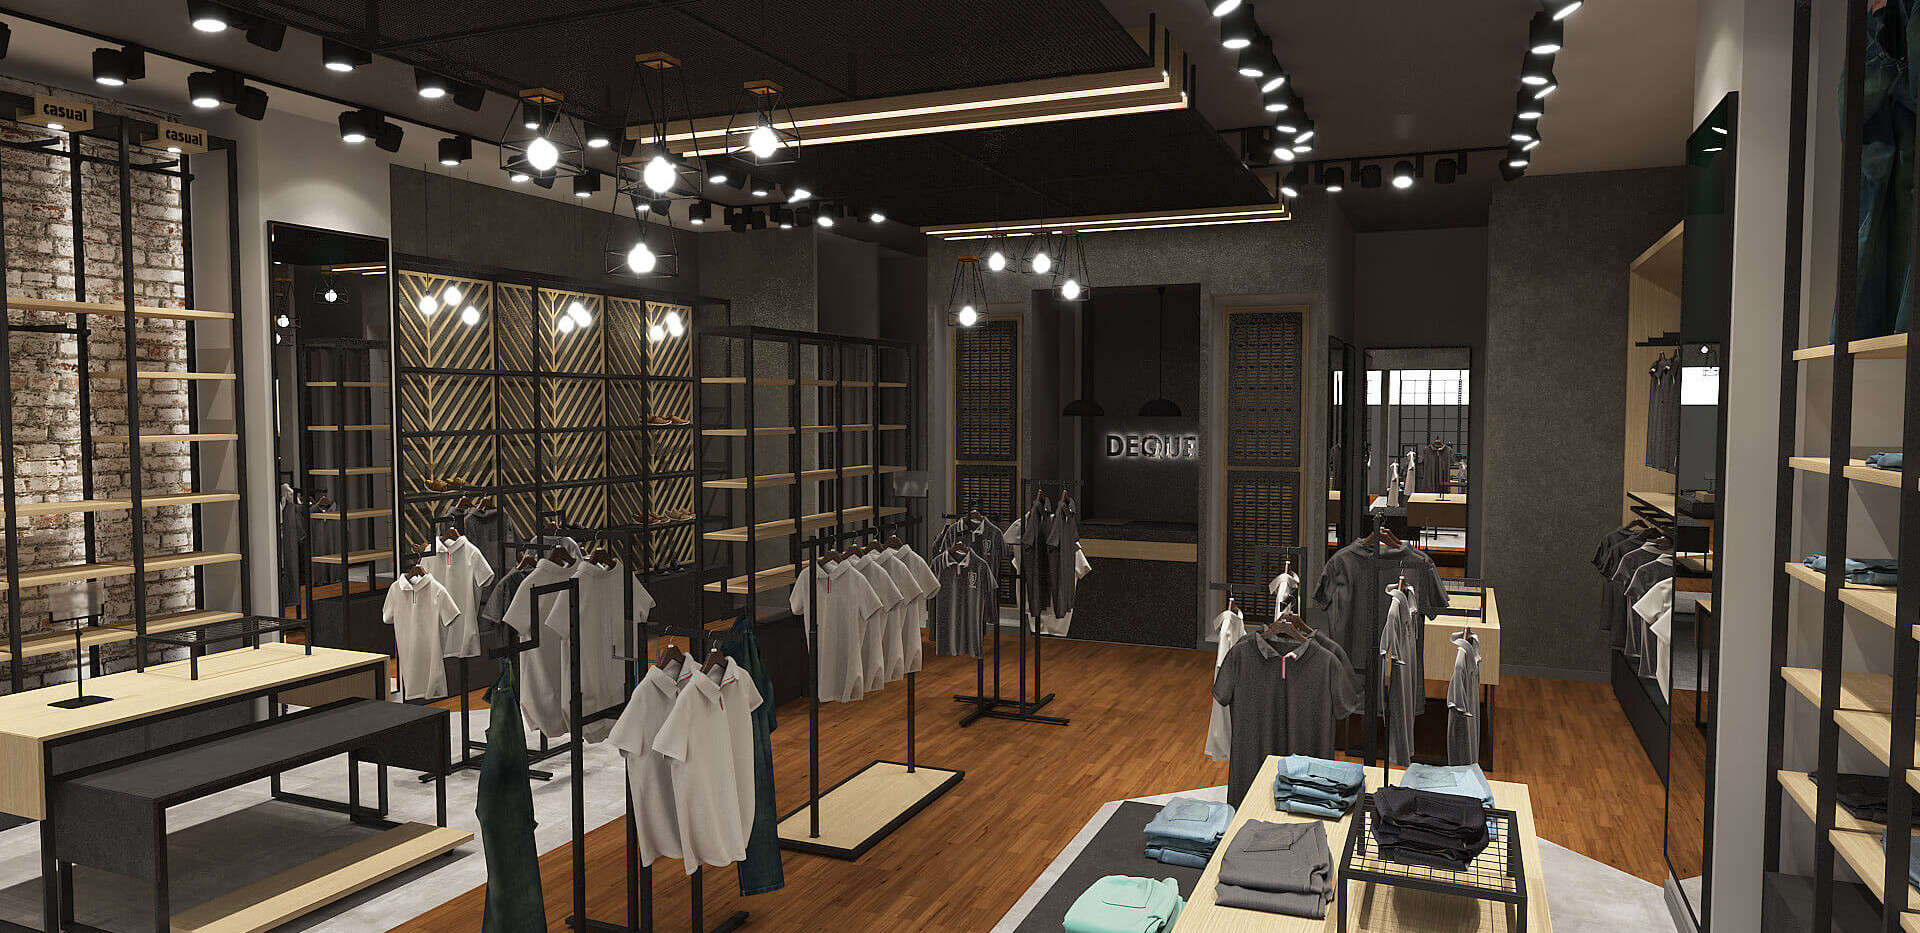 Dequell - Denim Store Shop Design-6.jpg